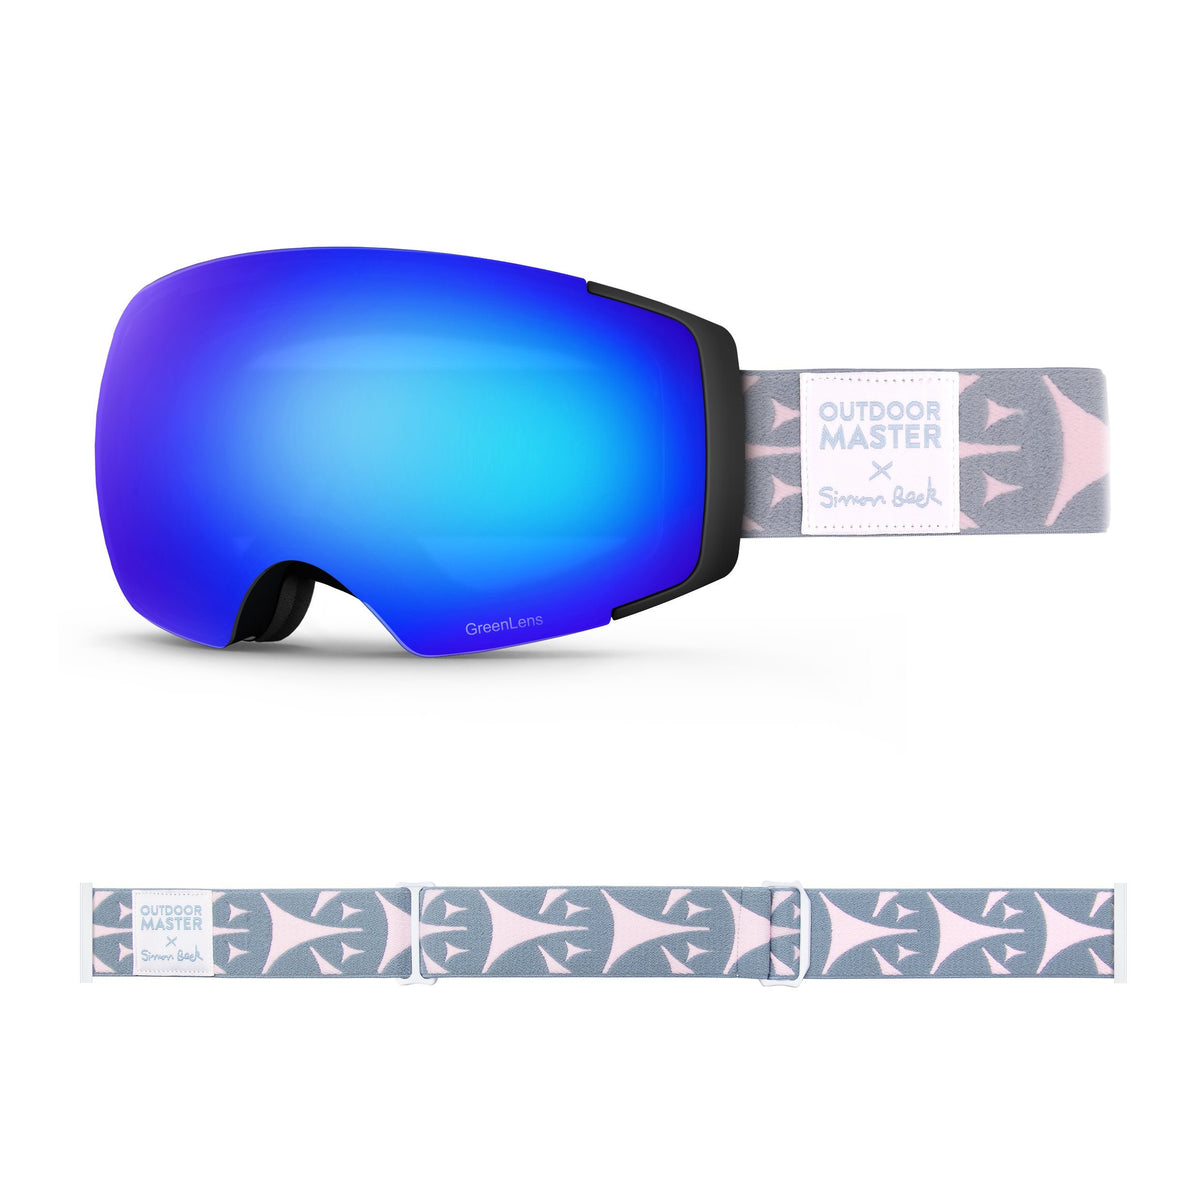 OutdoorMaster x Simon Beck Ski Goggles Pro Series - Snowshoeing Art Limited Edition OutdoorMaster GreenLens VLT 15% TAC Grey with REVO Blue Polarized Bouncy Triangles